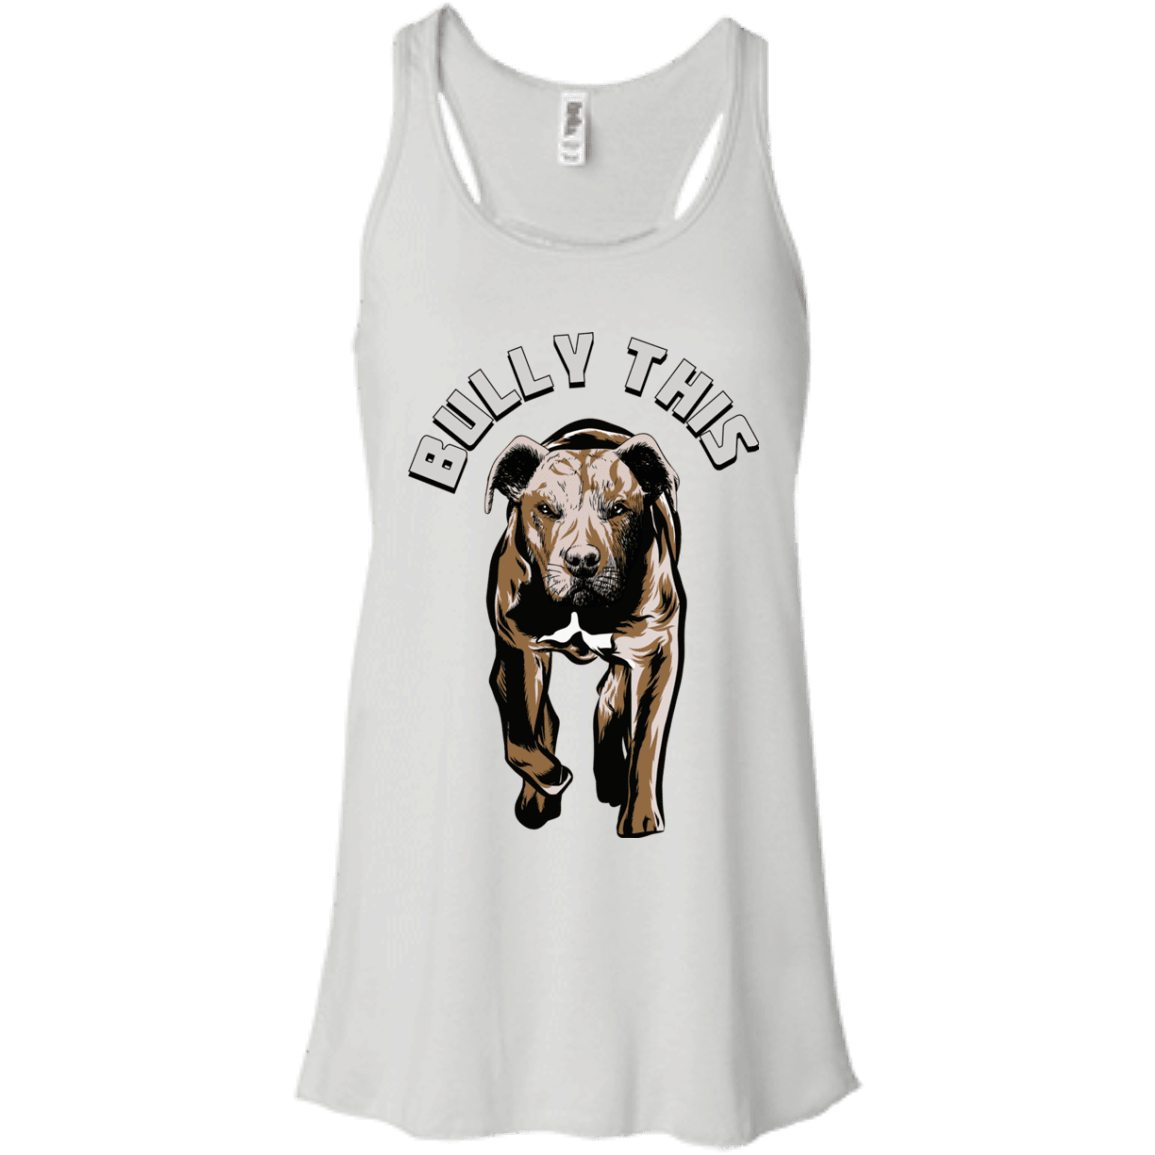 Bully This! - B8800 Bella + Canvas Flowy Racerback Tank, T-Shirts | Pit Bull T Shirts, Hoodies and more | Little Pit Shop